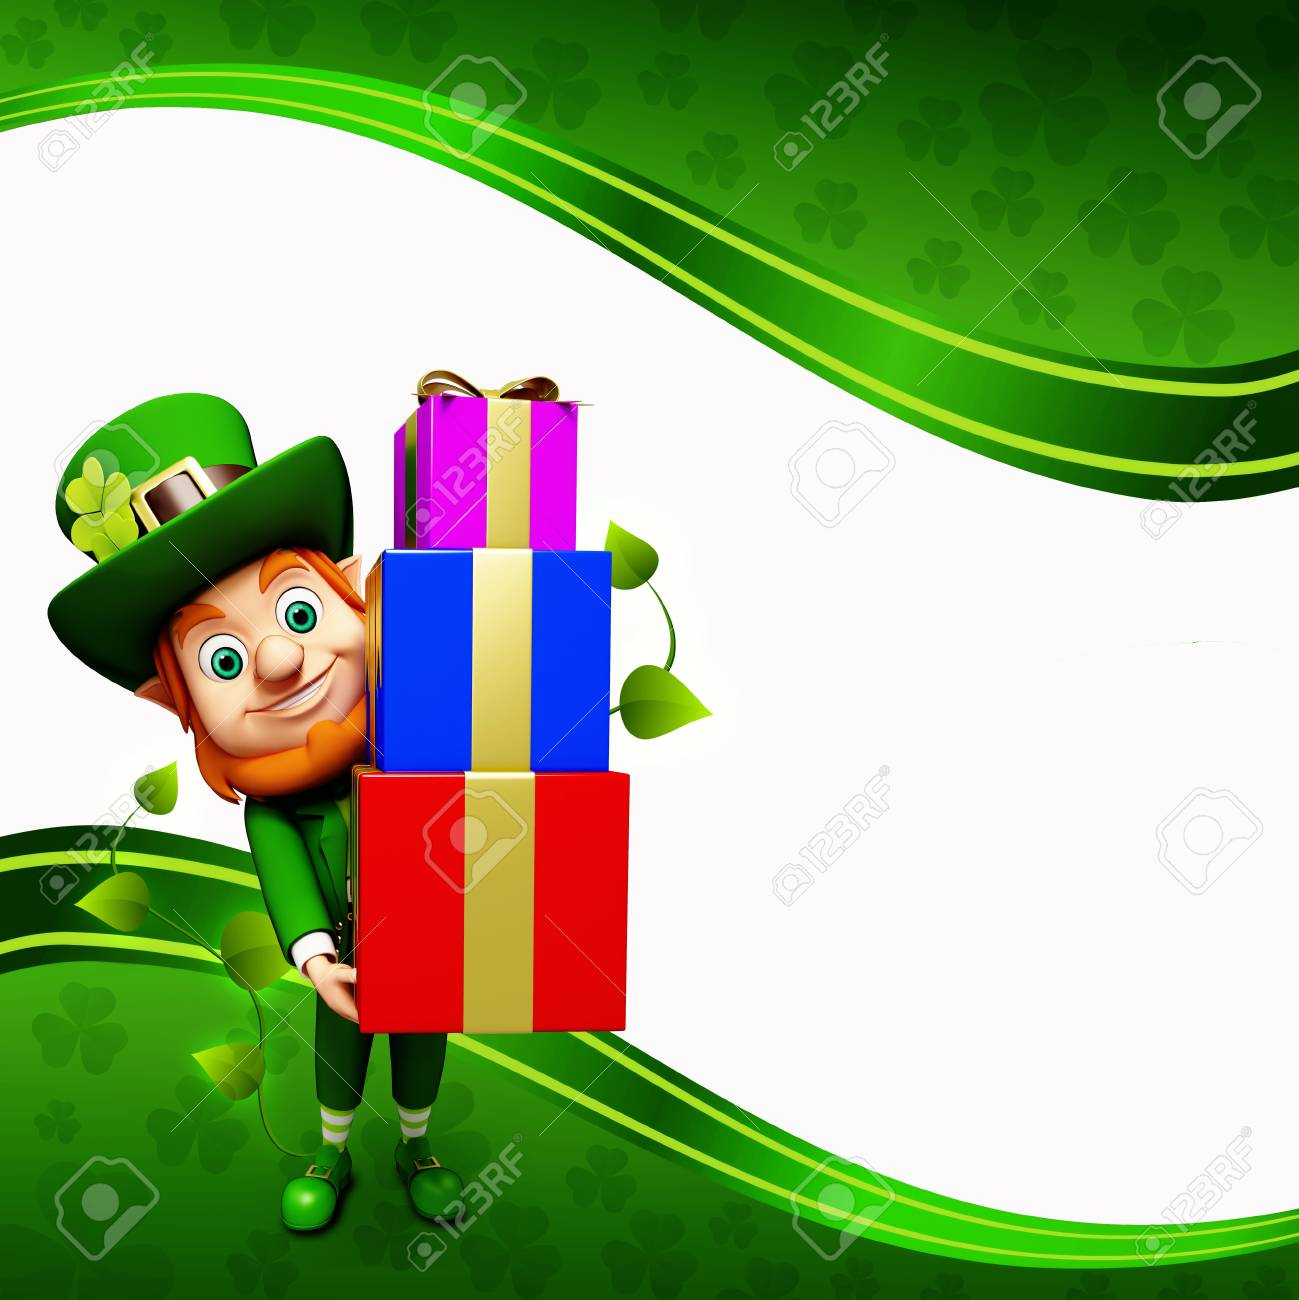 Leprechaun for st  patrick s day with pile of gifts Stock Photo - 19283973